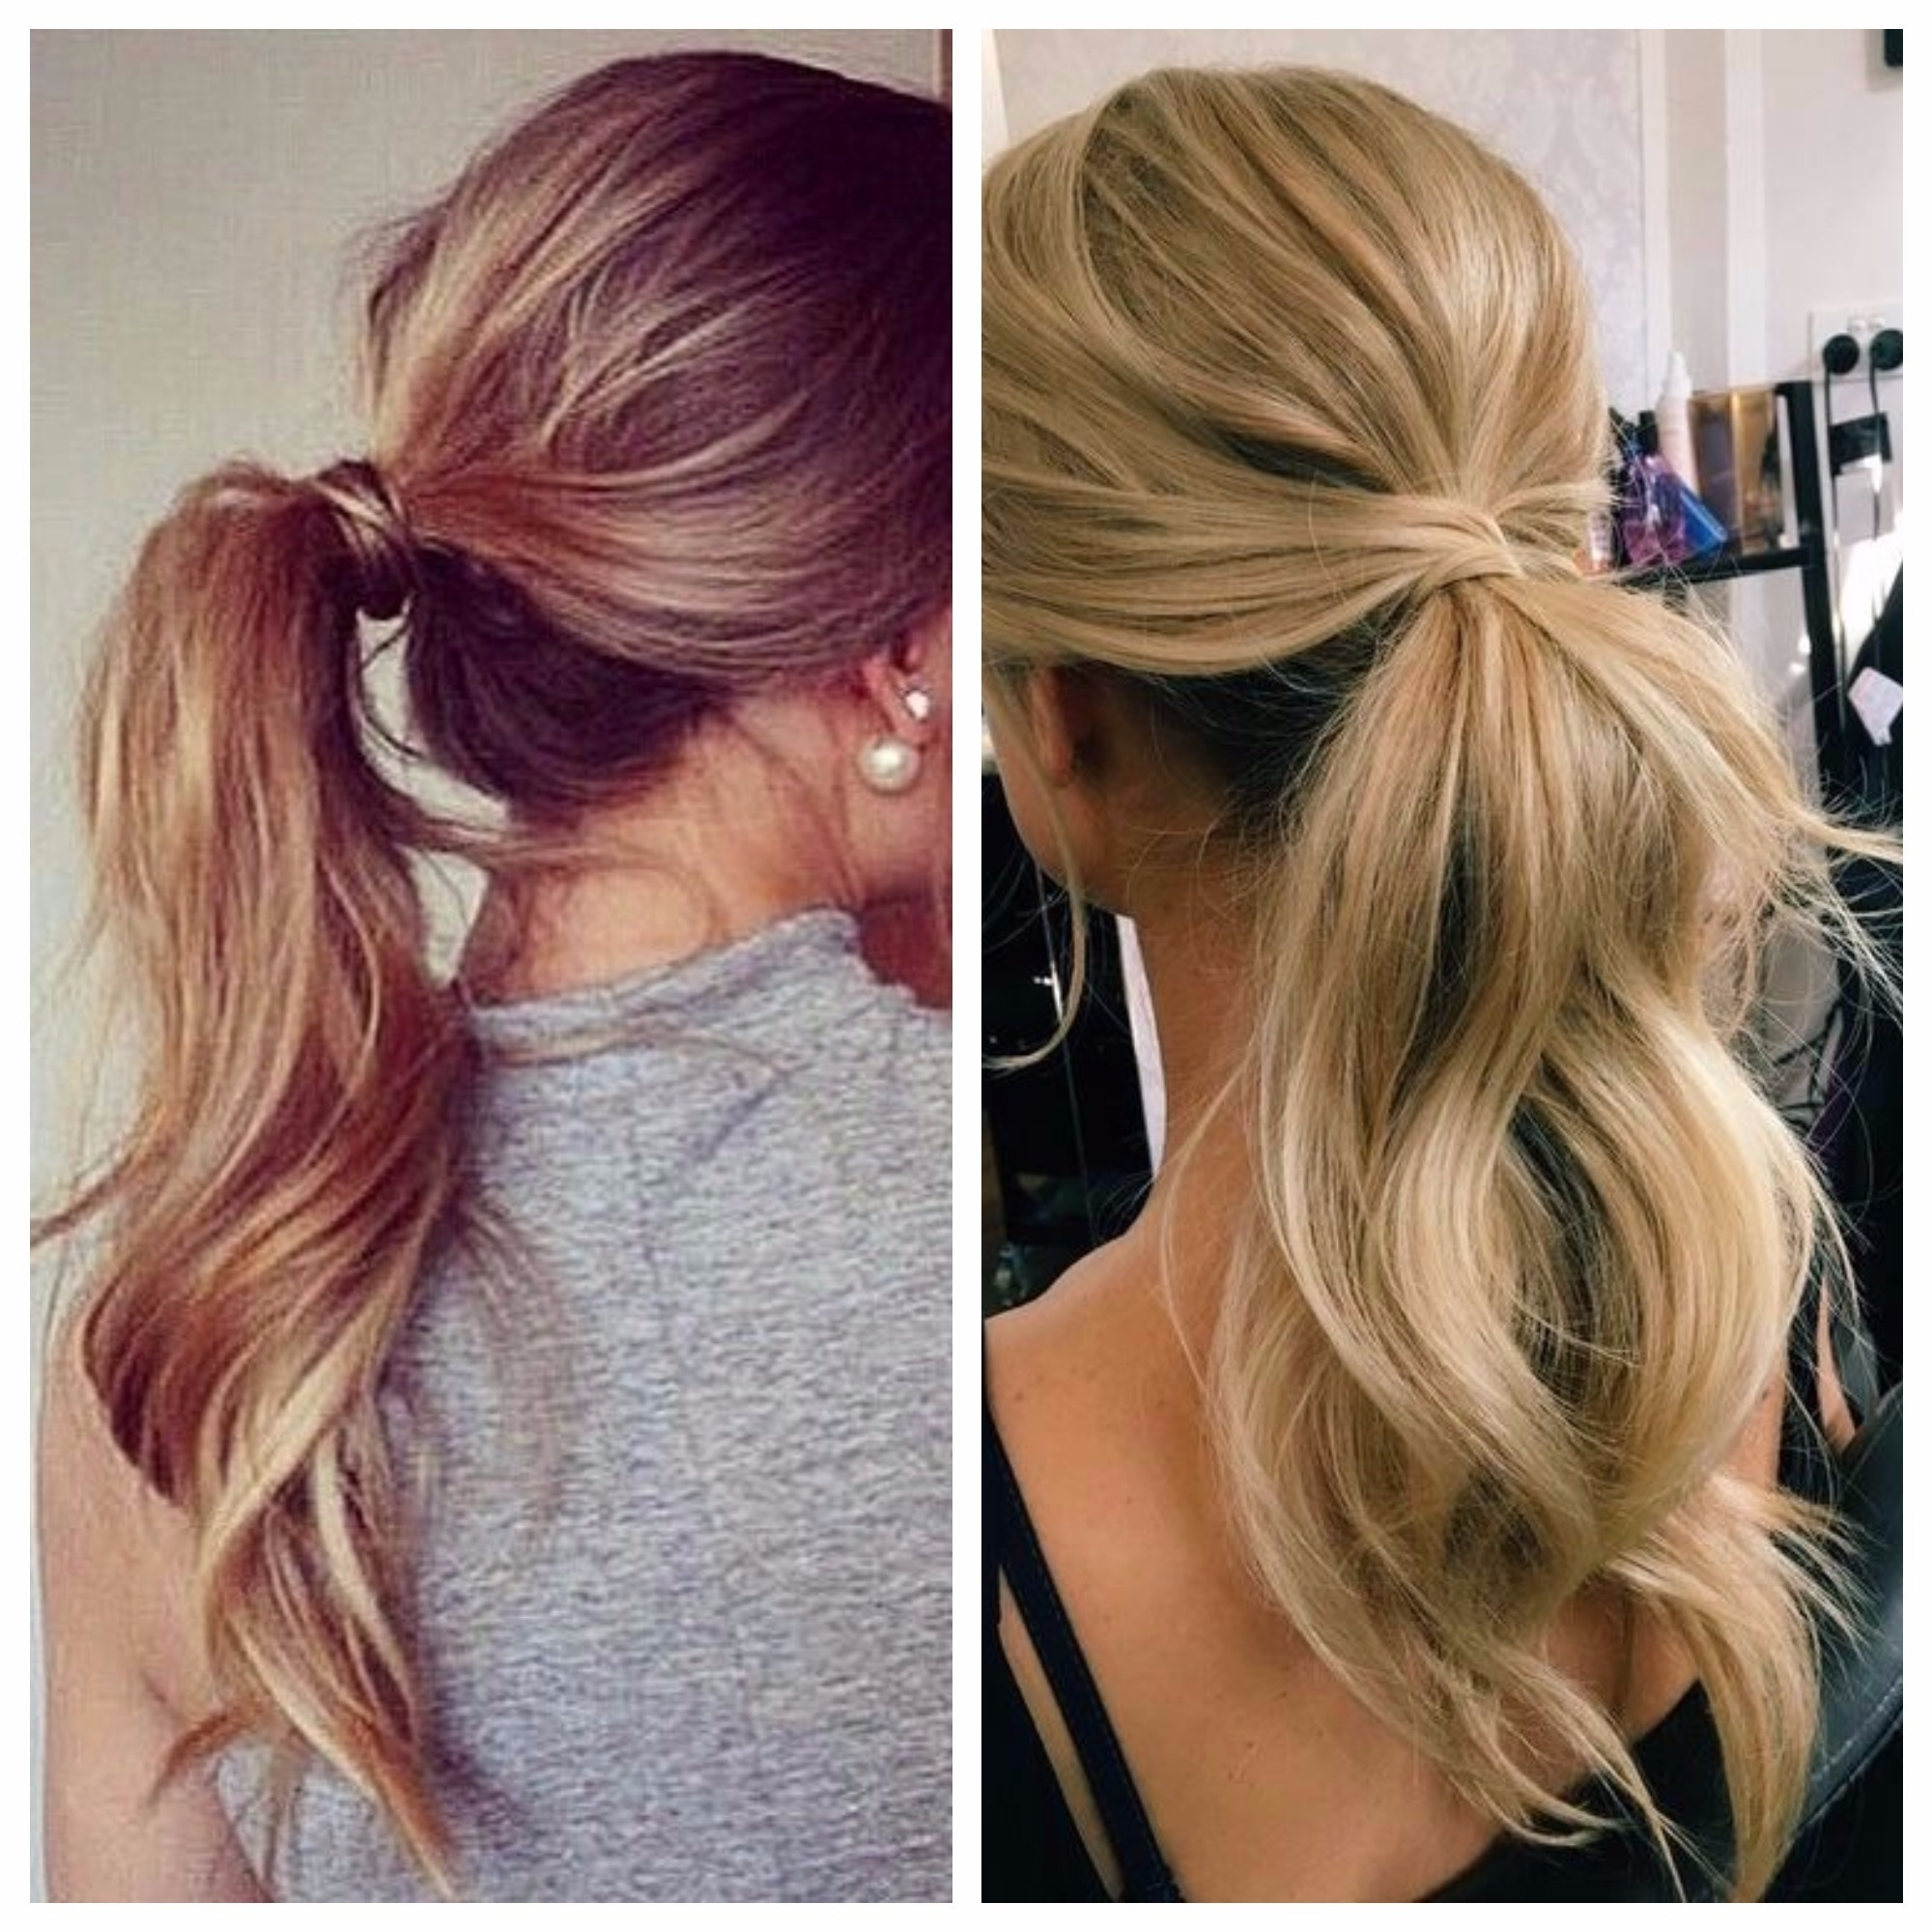 Want A Fuller, Longer Ponytail Hair For Thin Hair? – Hair World Magazine Inside Latest Ponytail Hairstyles For Fine Hair (View 19 of 20)